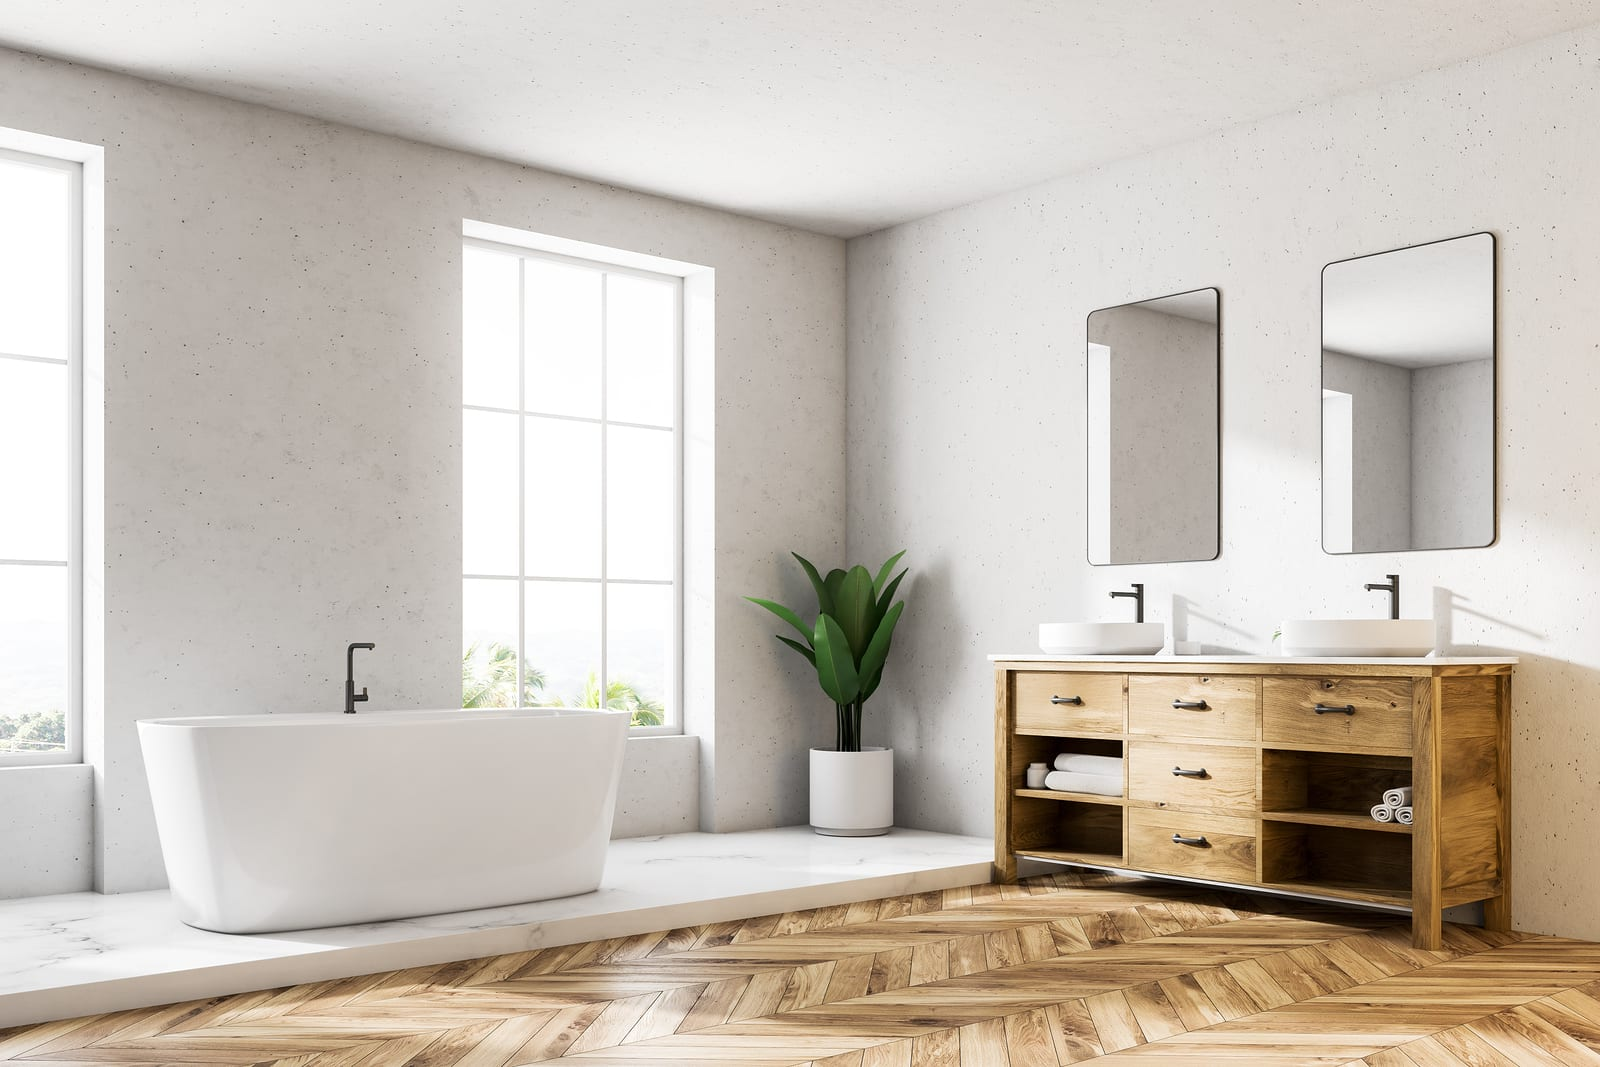 New Bathroom Trends to Inspire a Remodel